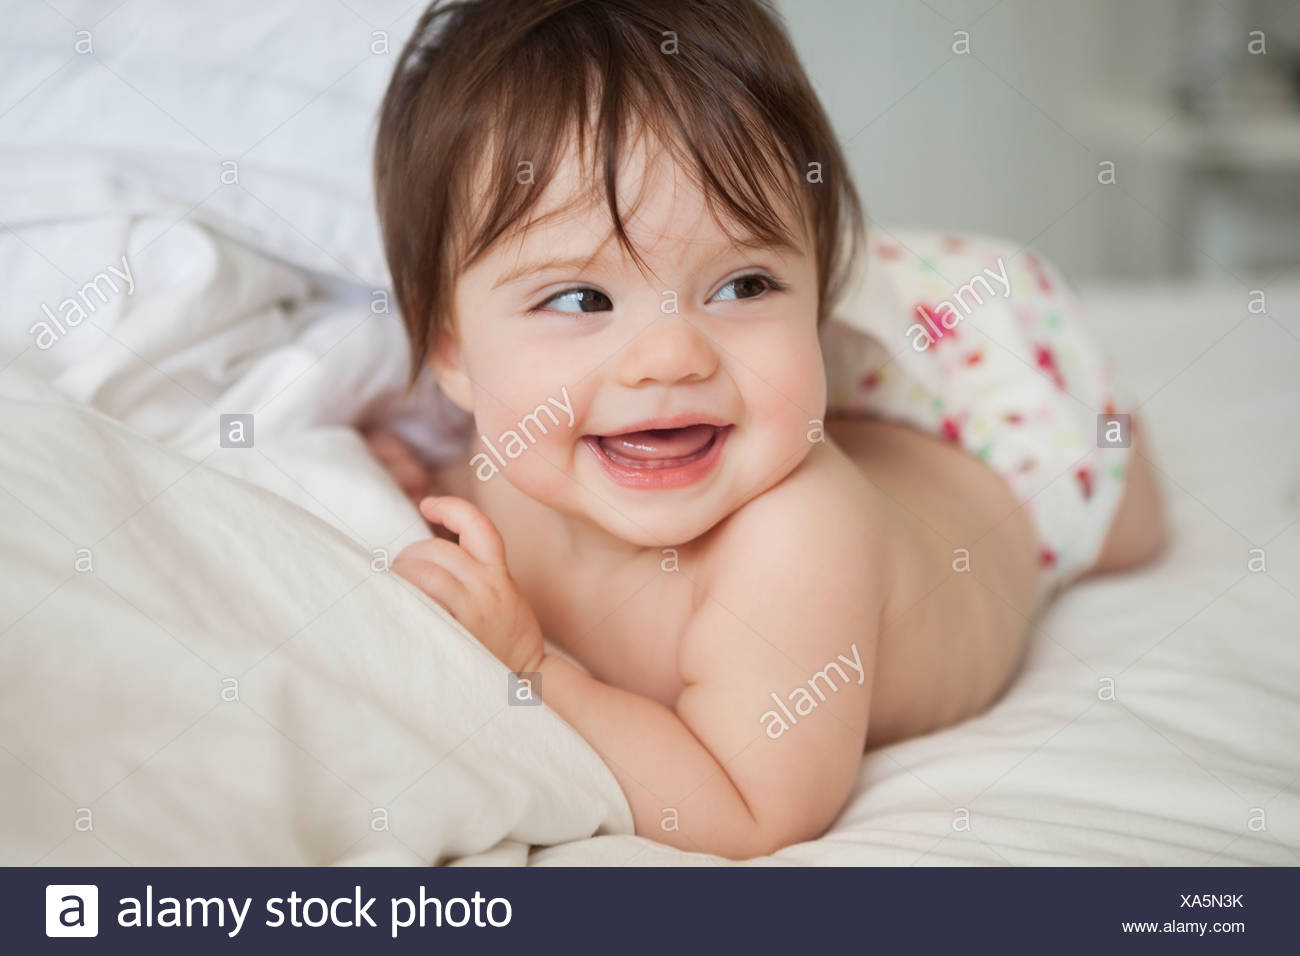 Baby girl laying in bedsheets Stock Photo